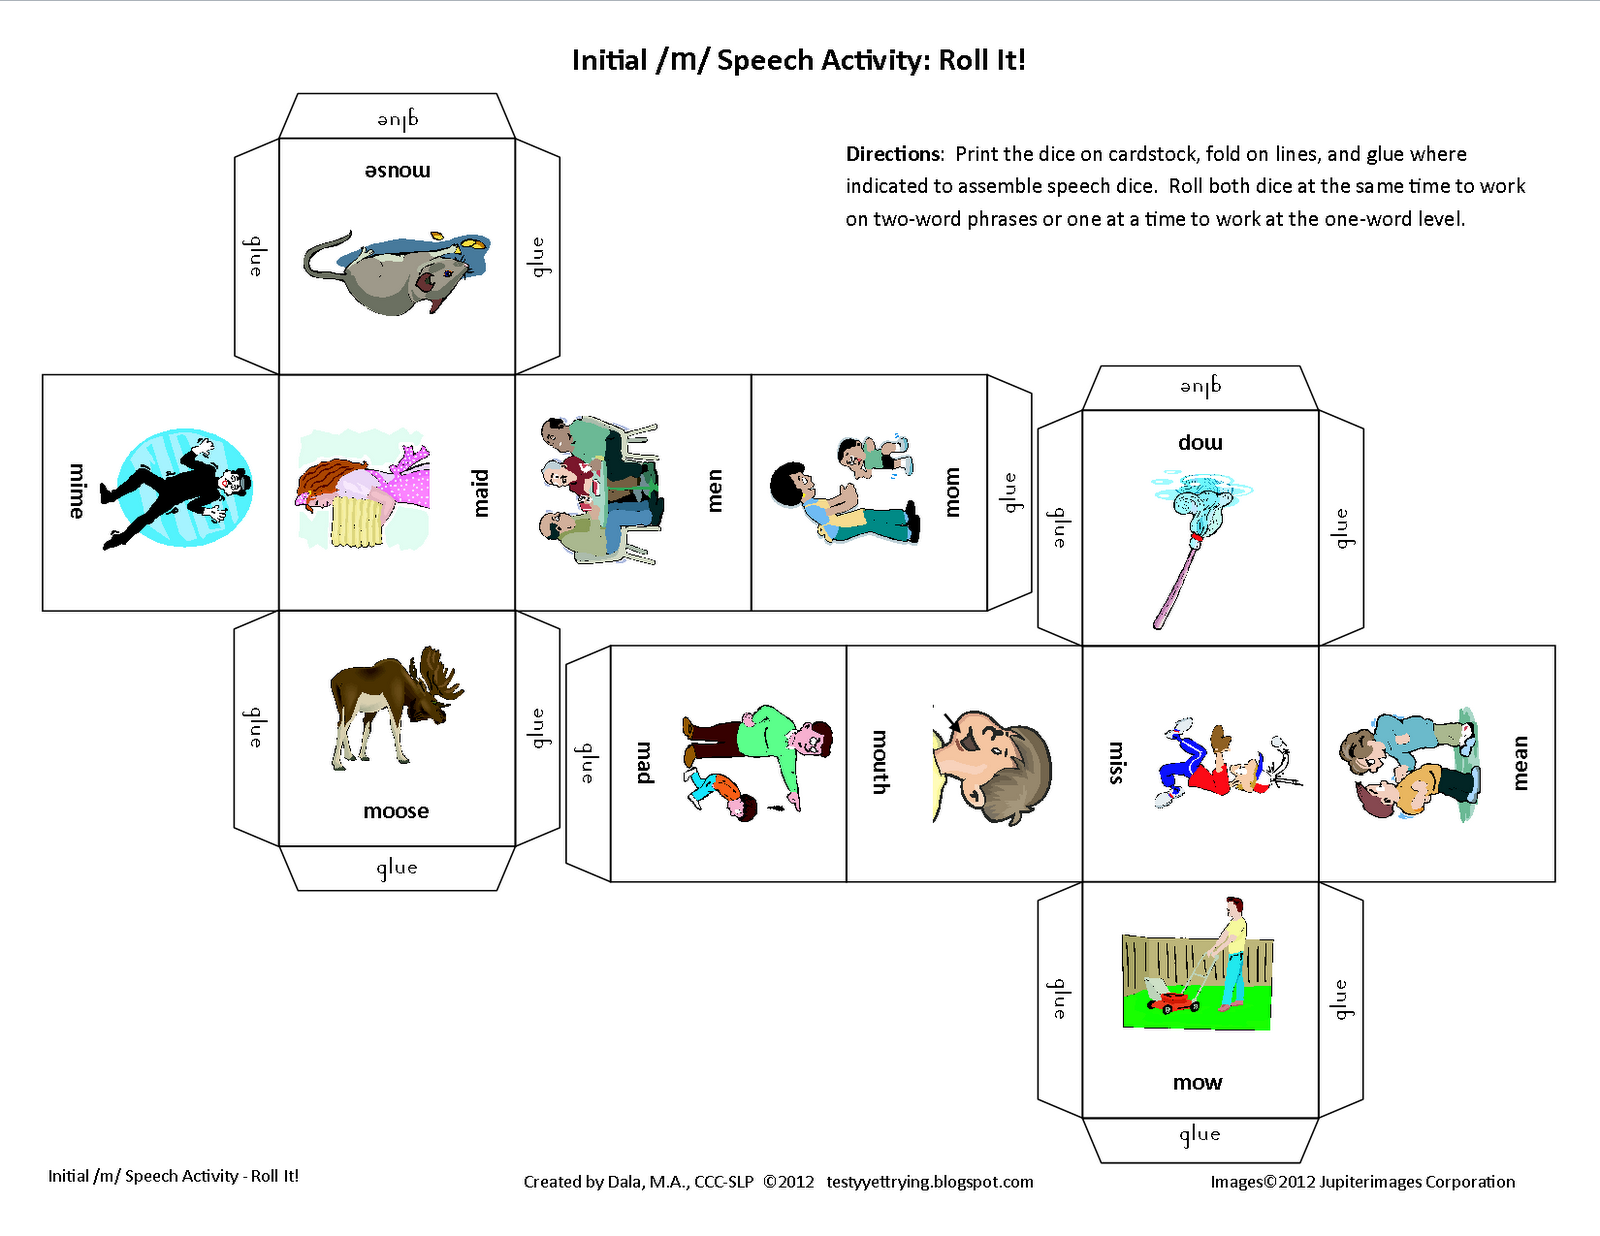 testy yet trying roll it printable initial m speech activity